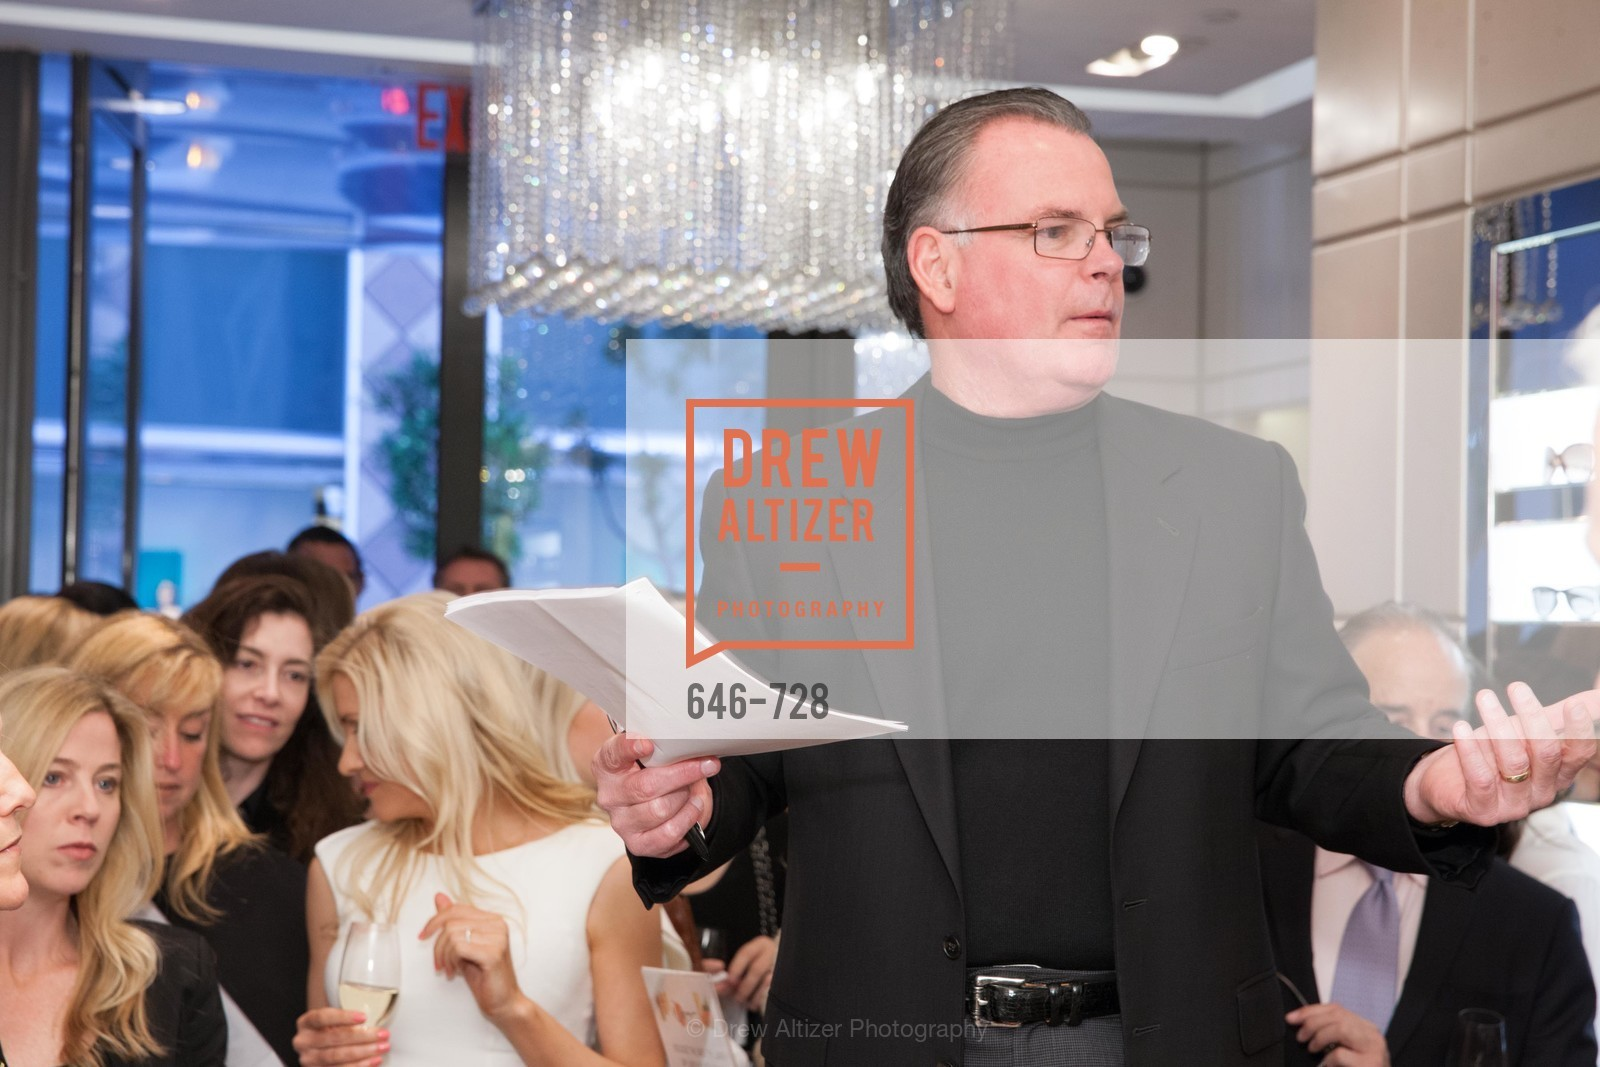 Extras, JIMMY CHOO Bubbles, Bites & Stiletto's to benefit AirCraft Casualty Emotional Support Services (ACCESS), May 15th, 2015, Photo,Drew Altizer, Drew Altizer Photography, full-service event agency, private events, San Francisco photographer, photographer California